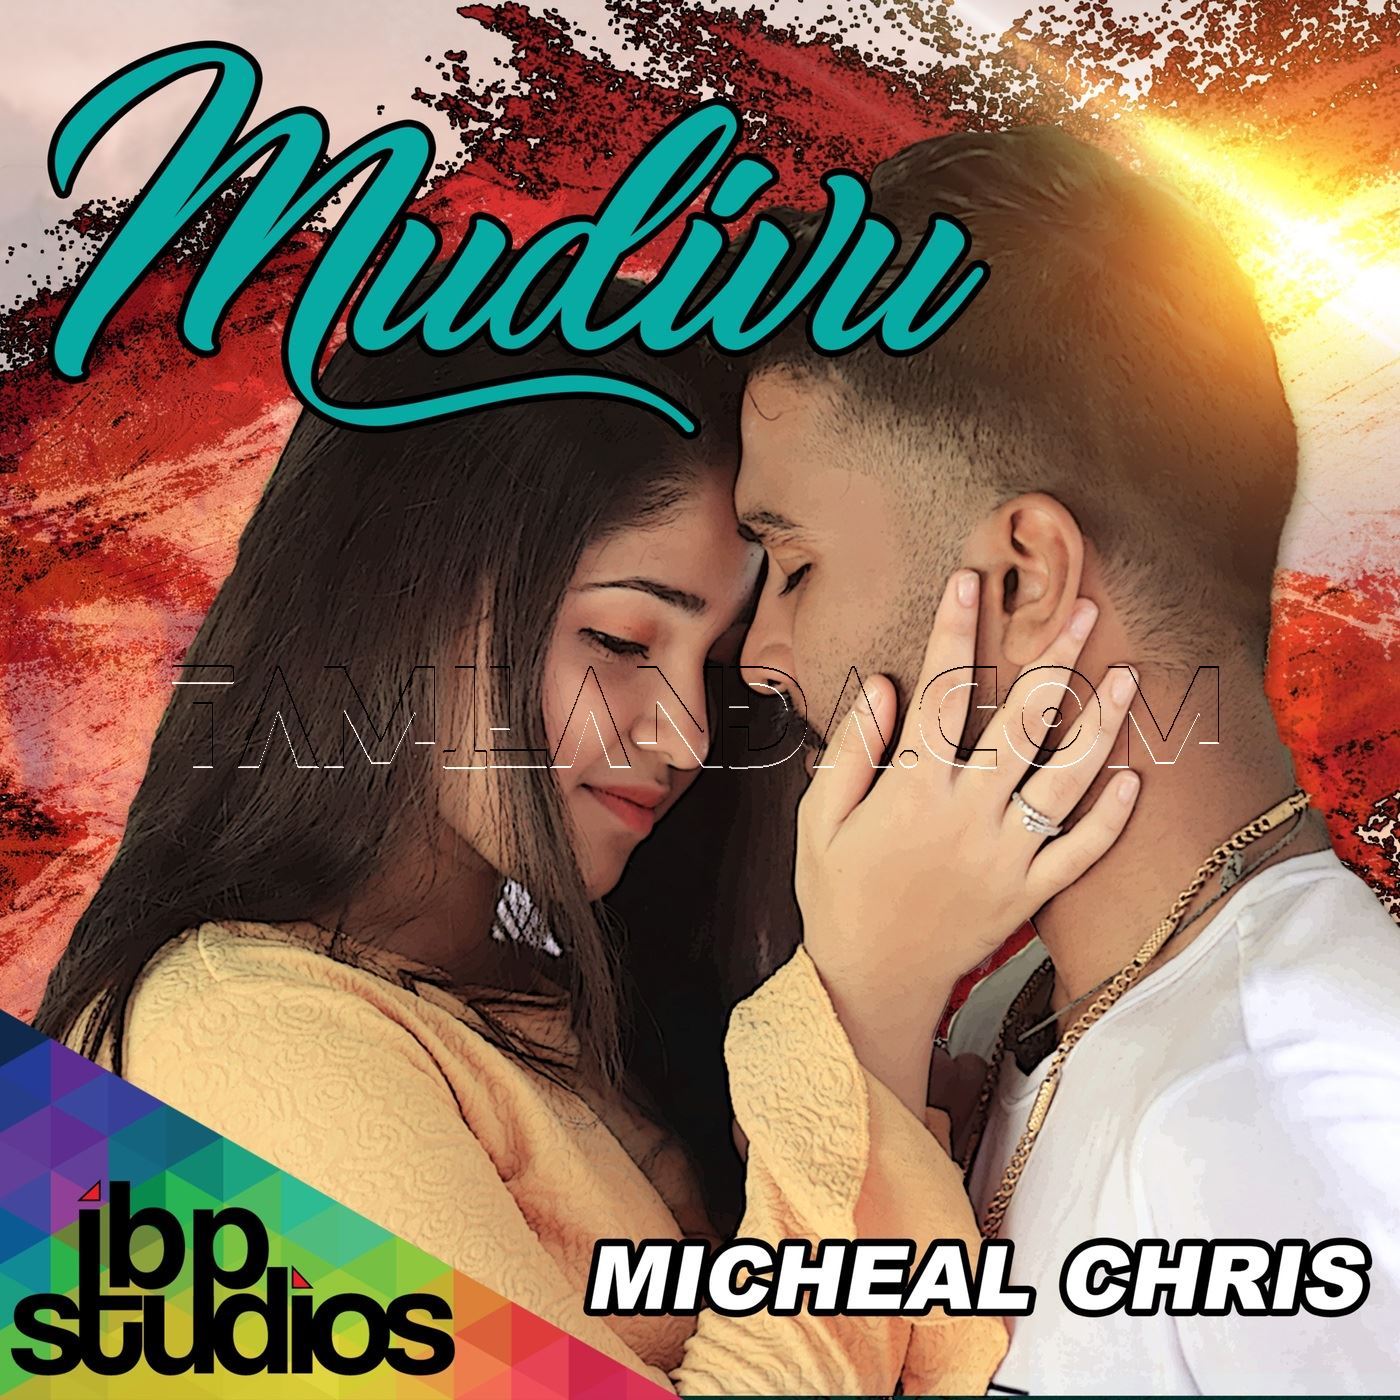 Mudivu – Single FLAC Song (2018)